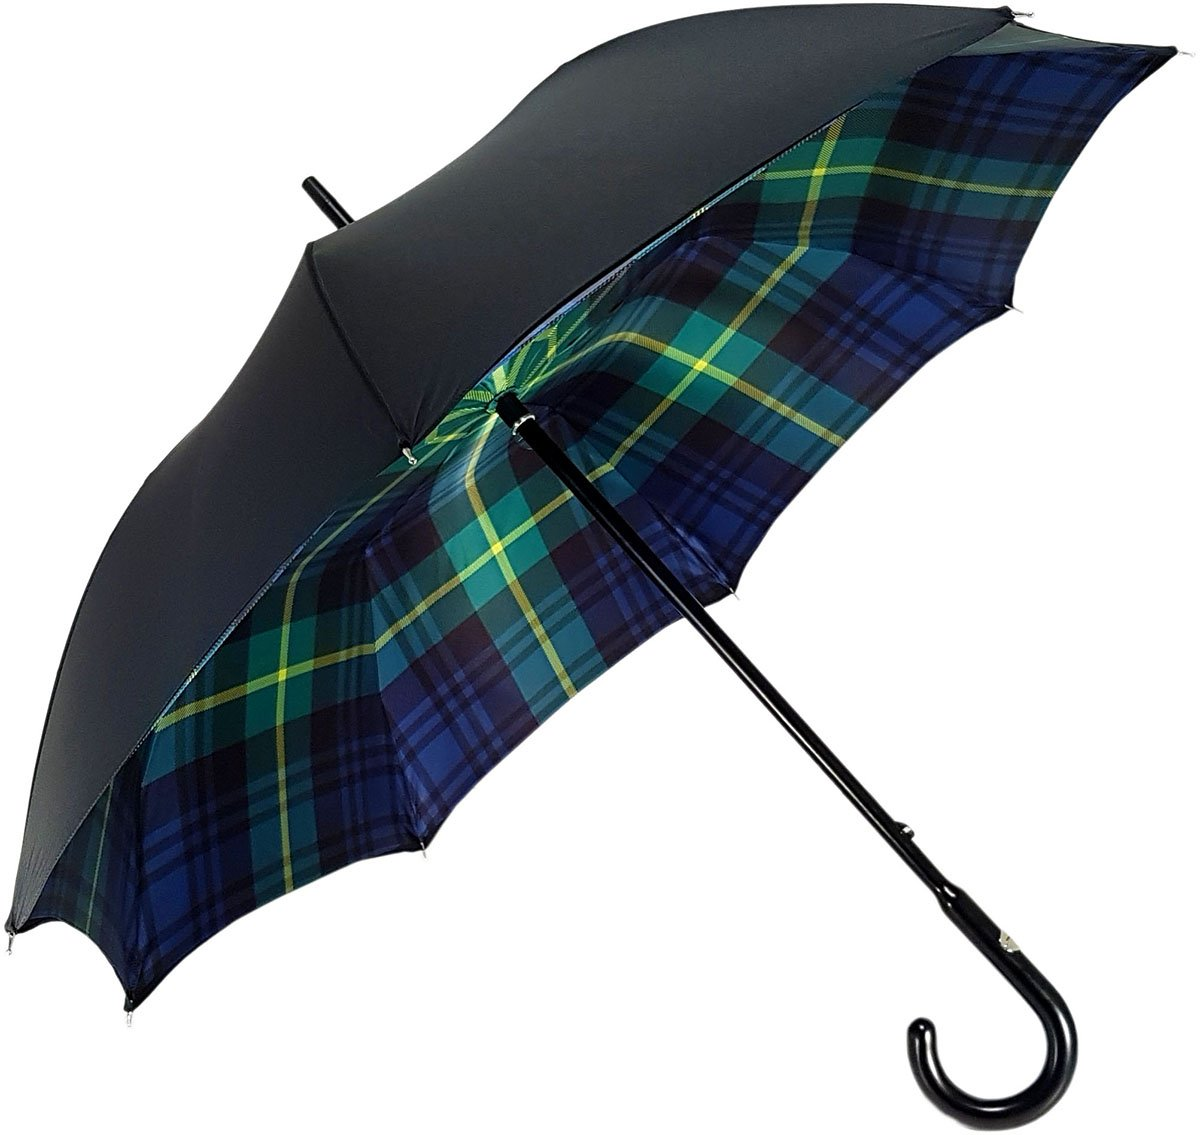 DOUBLE CLOTH GENTLEMEN UMBRELLAS